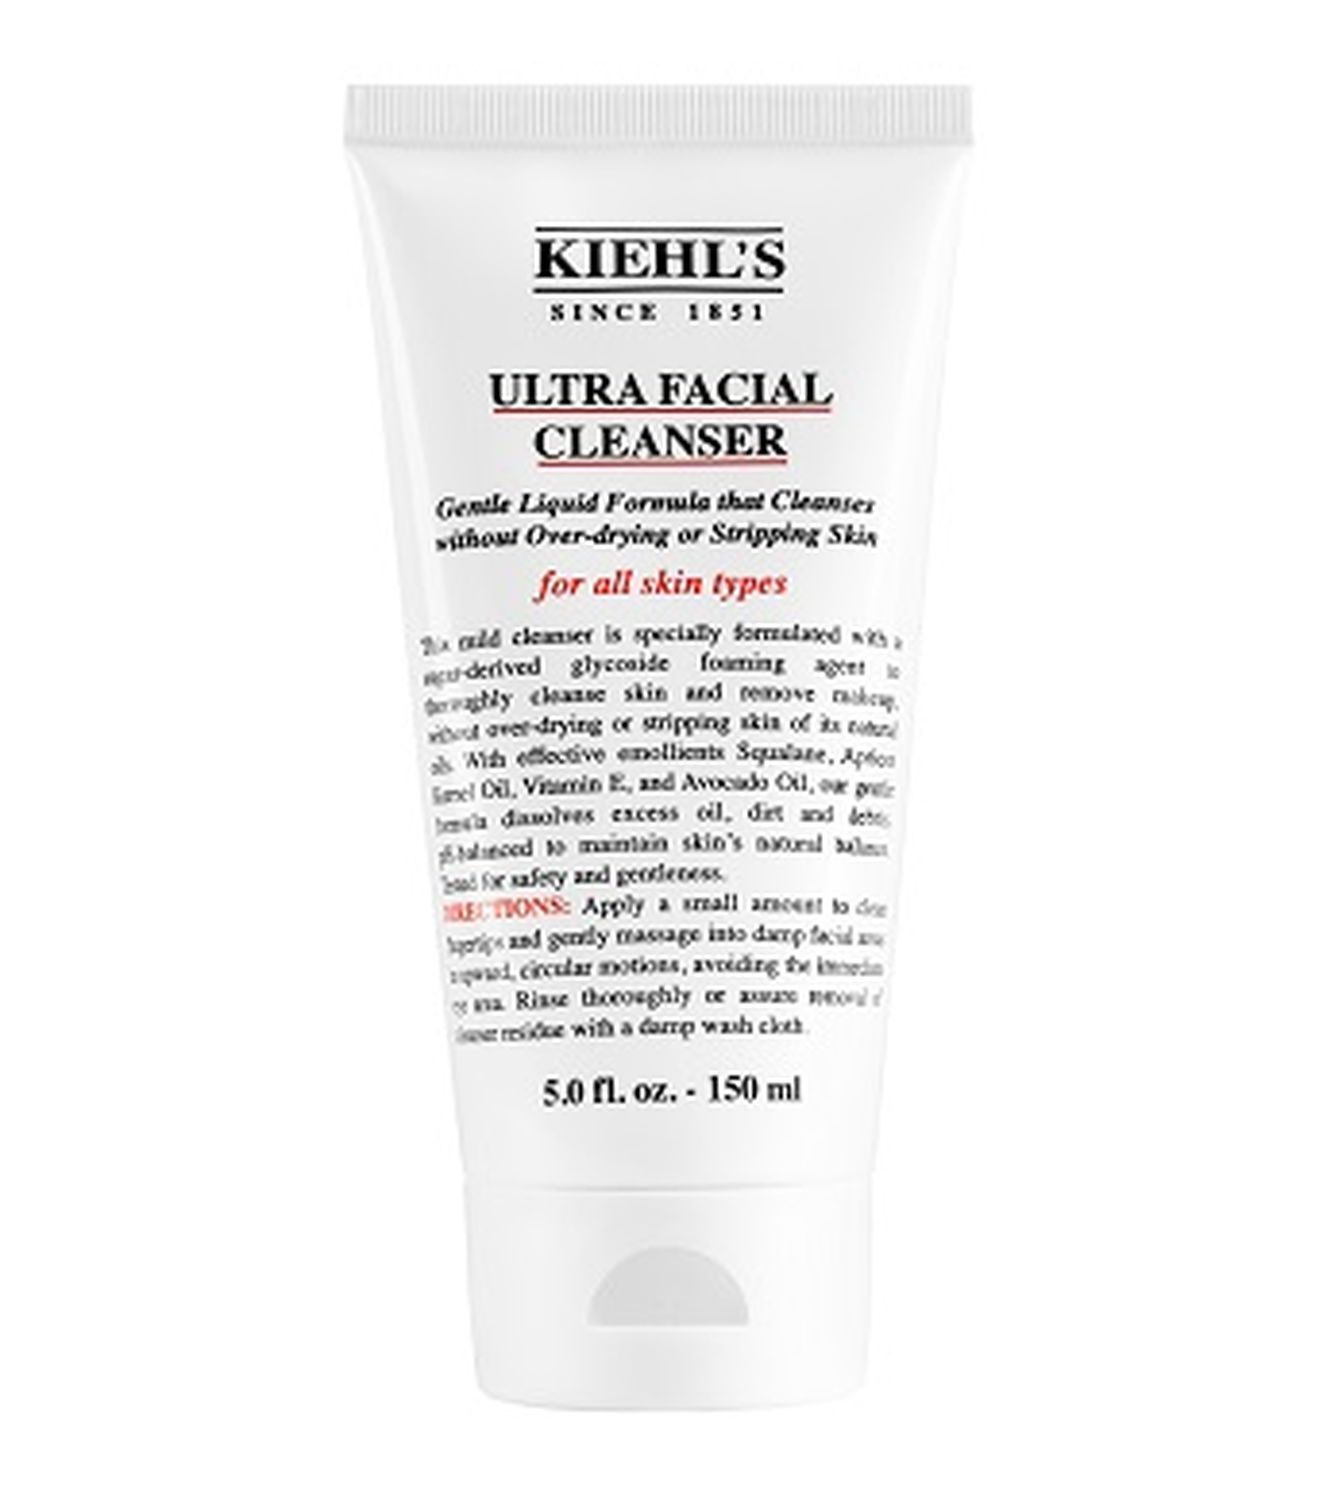 Ultra_Facial_Cleanser_3605970024192_5.0fl.oz..jpg